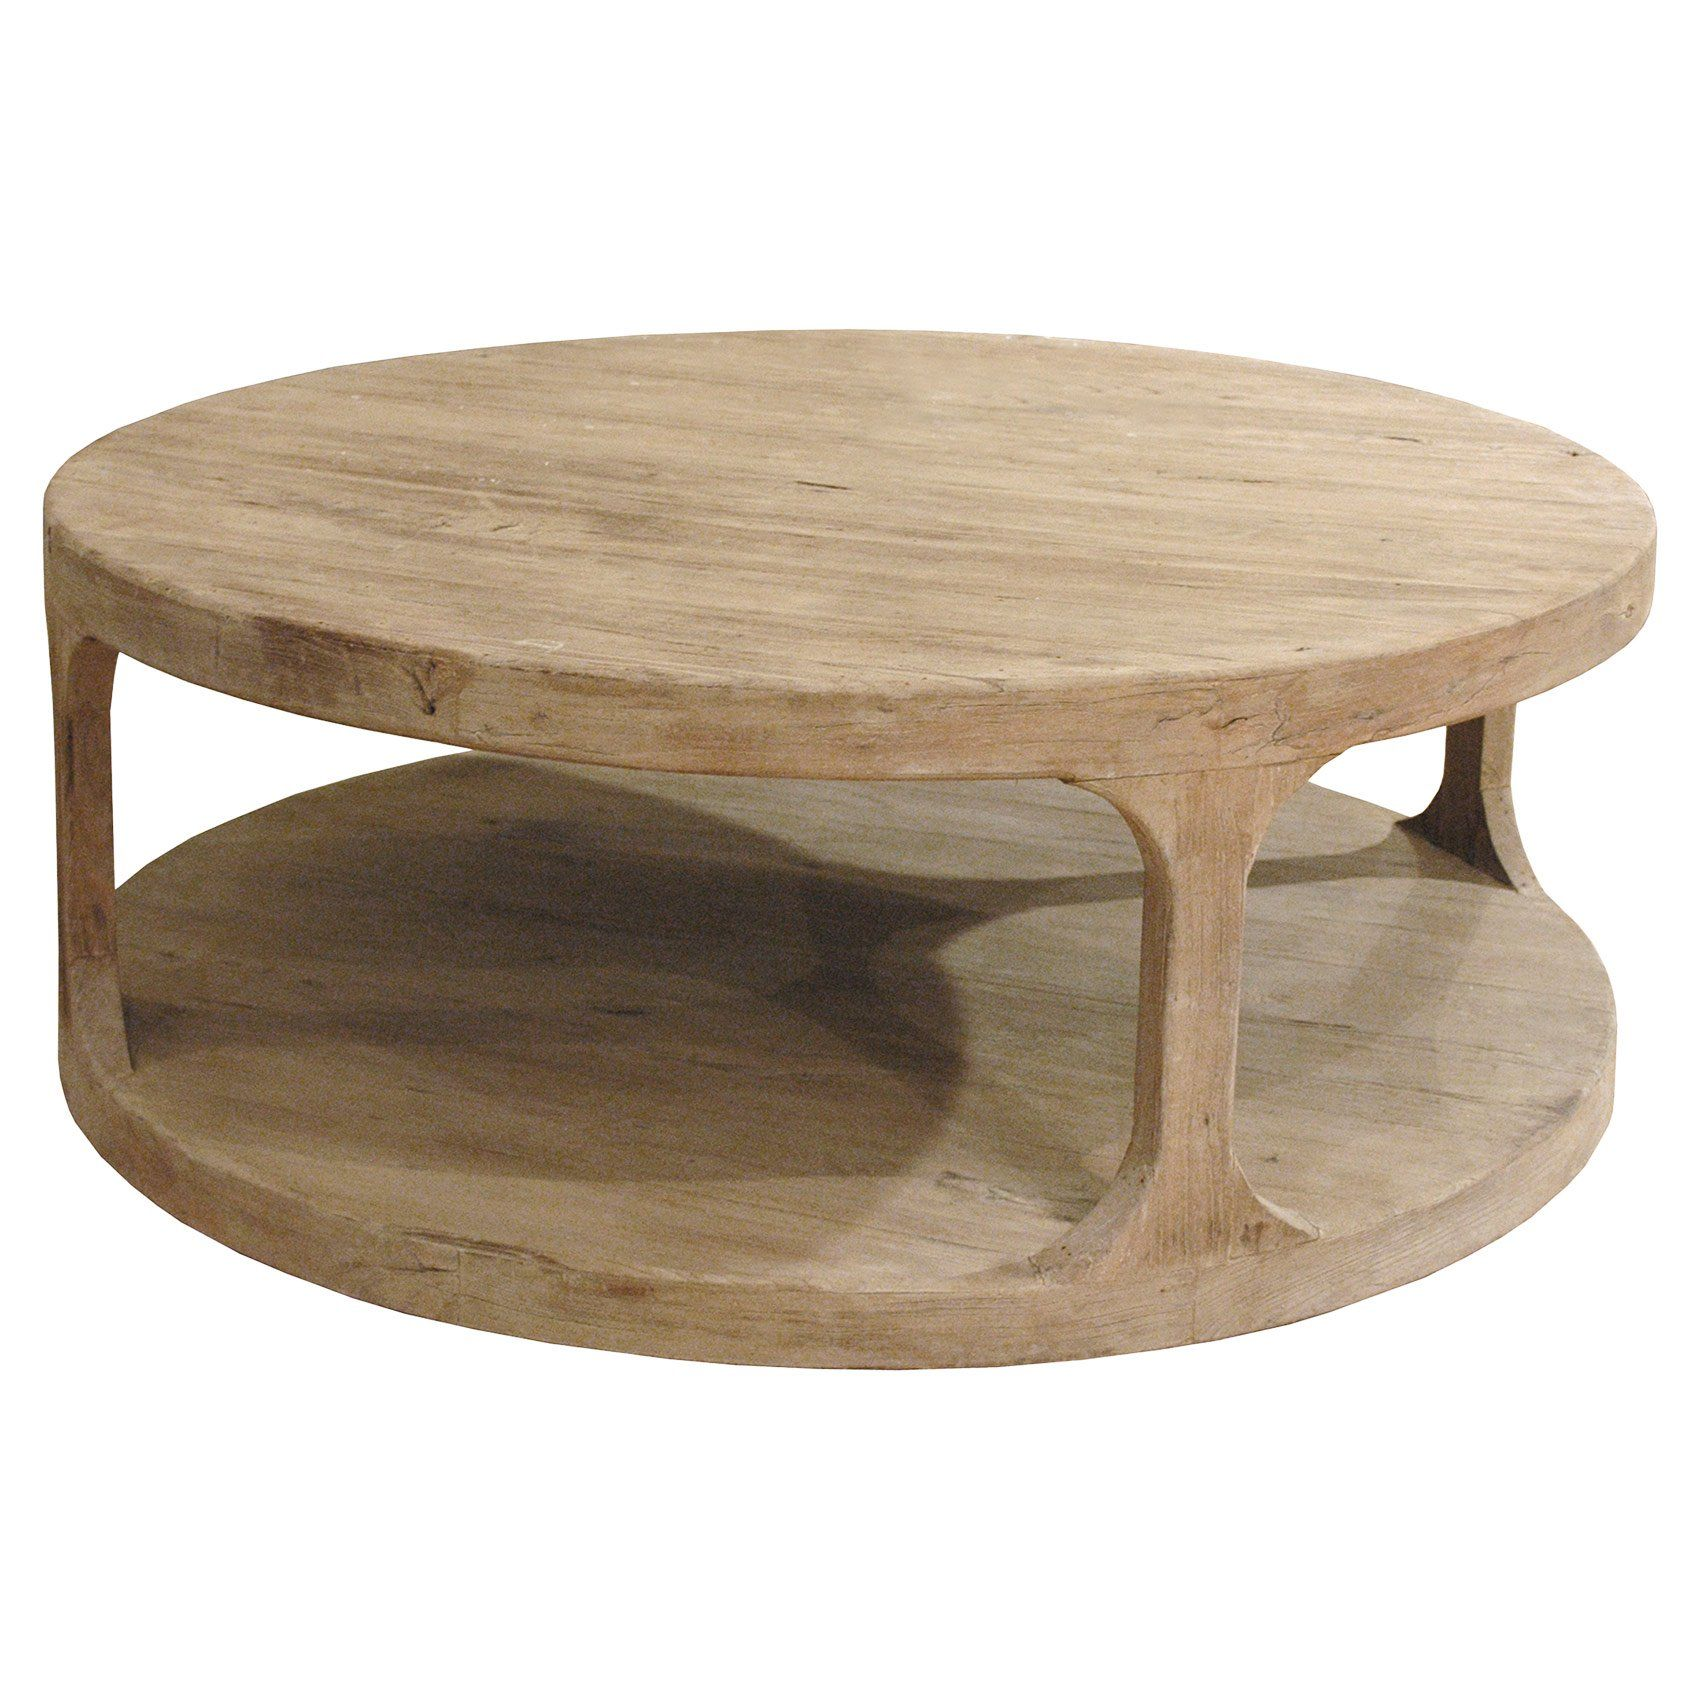 Sian Rustic Lodge Brown Pine Wood Round Coffee Table By Kathy